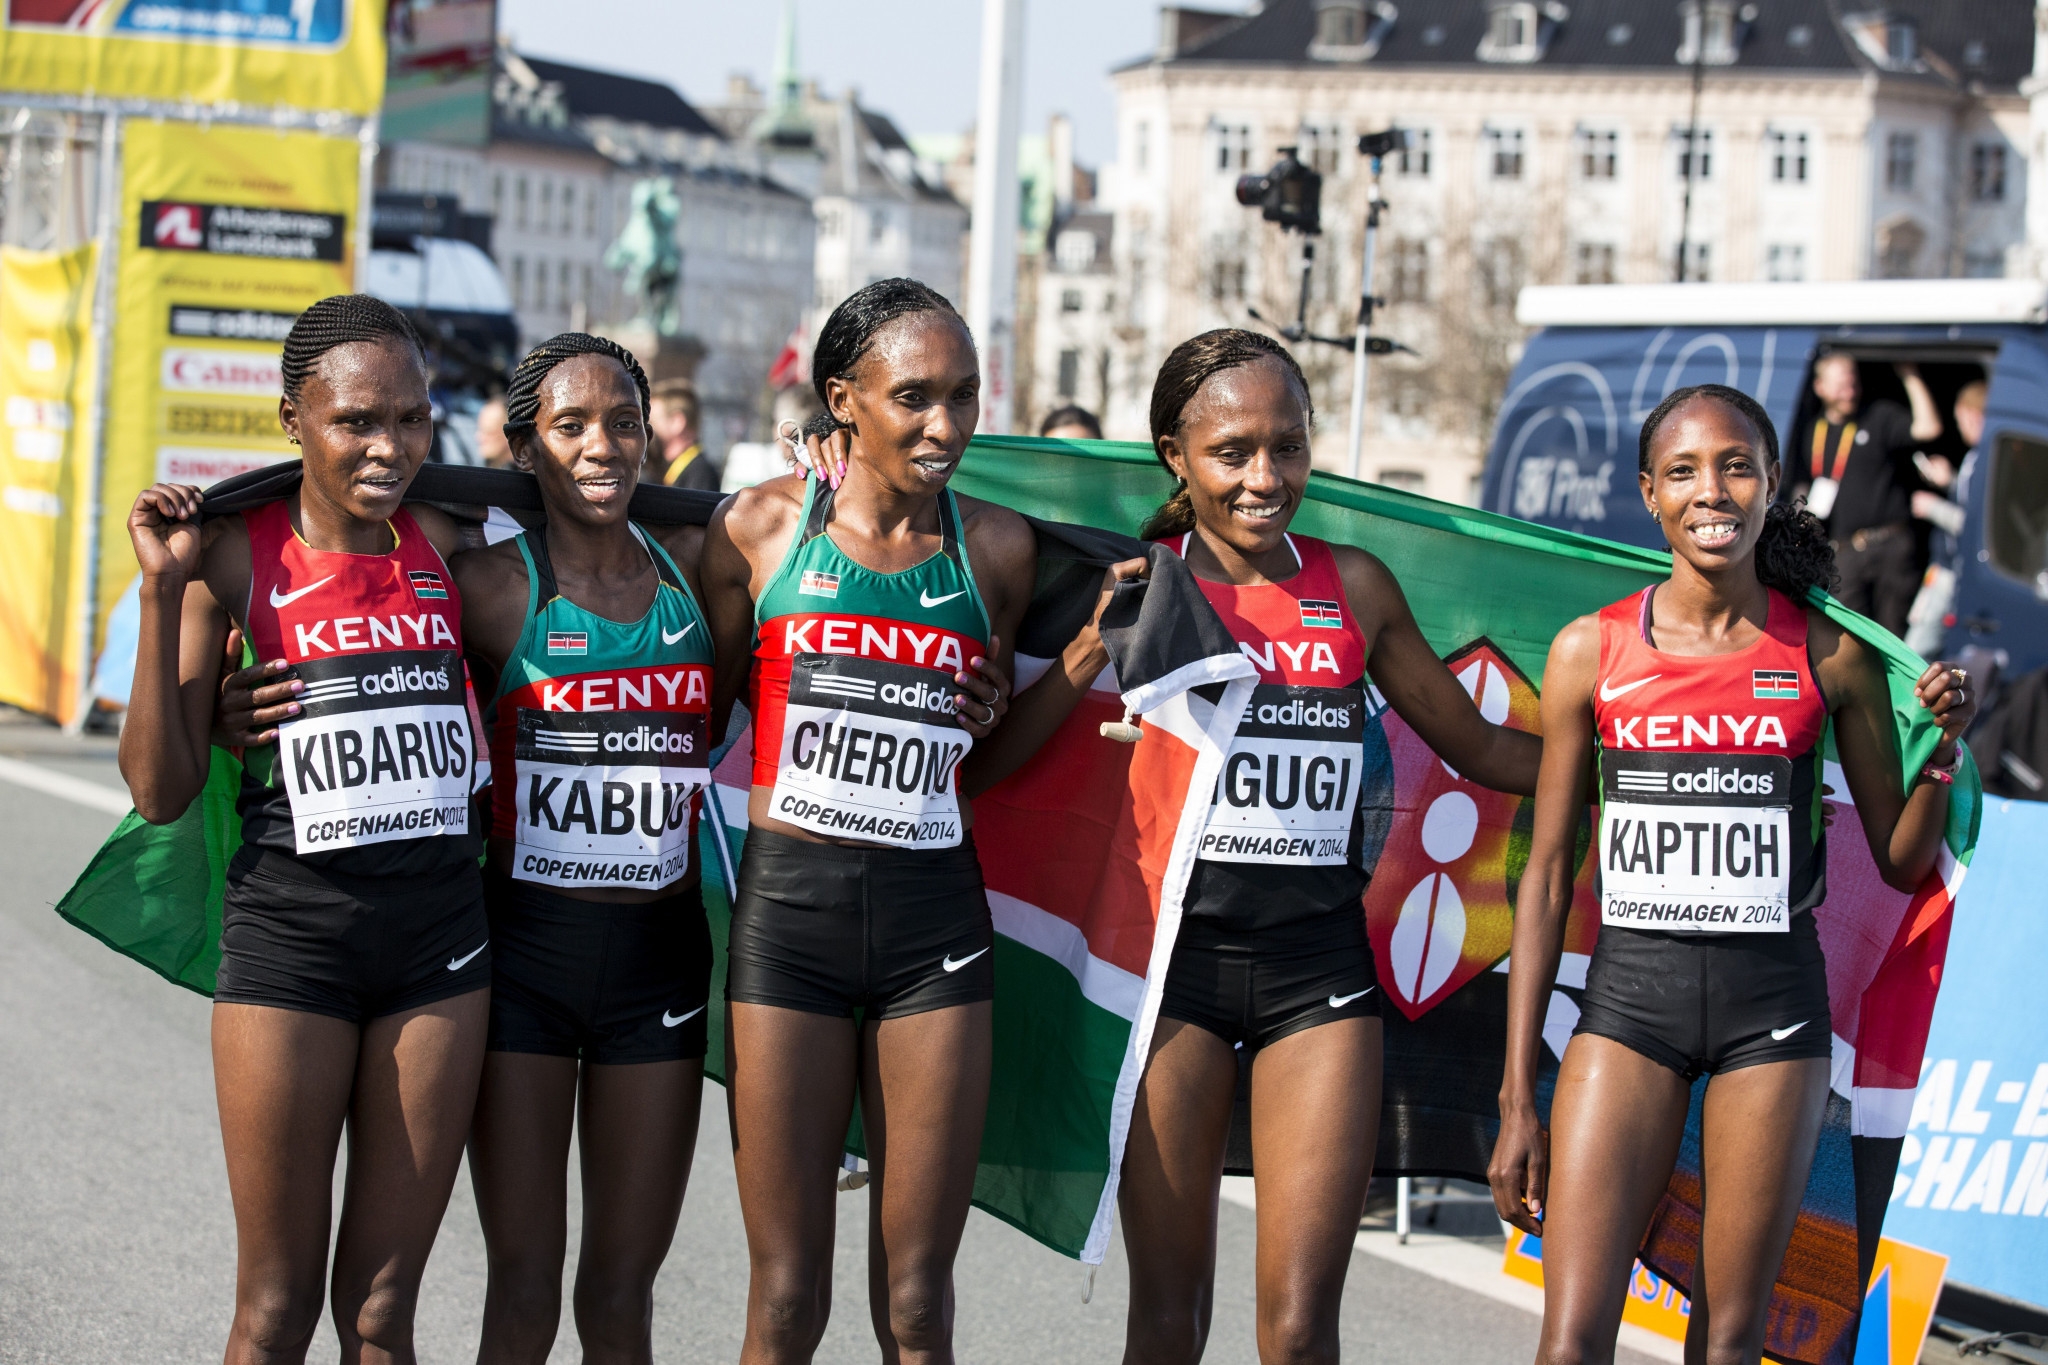 Mercy Jerotich Kibarus, left, had been part of Kenya's team that won the gold medals at the 2014 IAAF World Half Marathon Championships in Copenhagen ©Getty Images